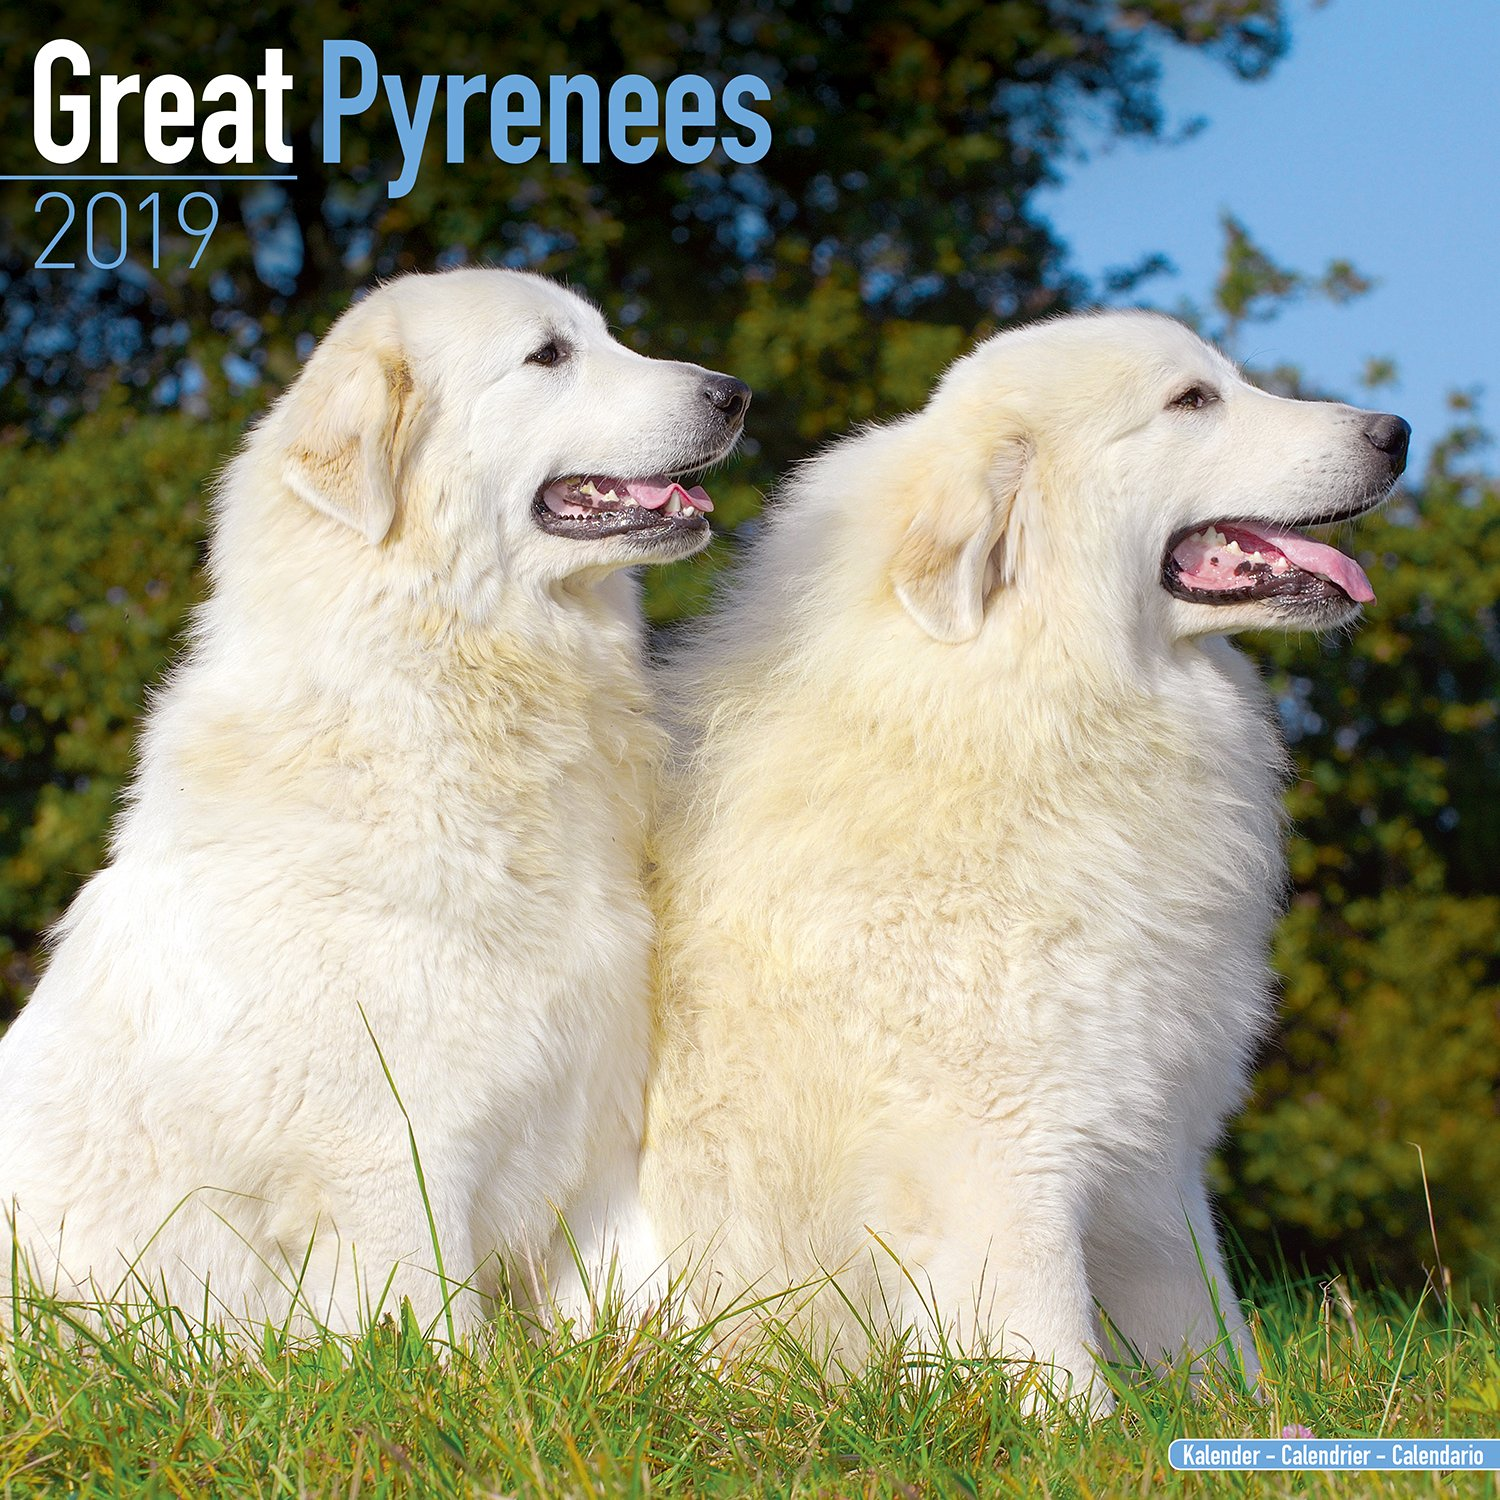 Great Pyrenees Dog Breed Pictures, 1